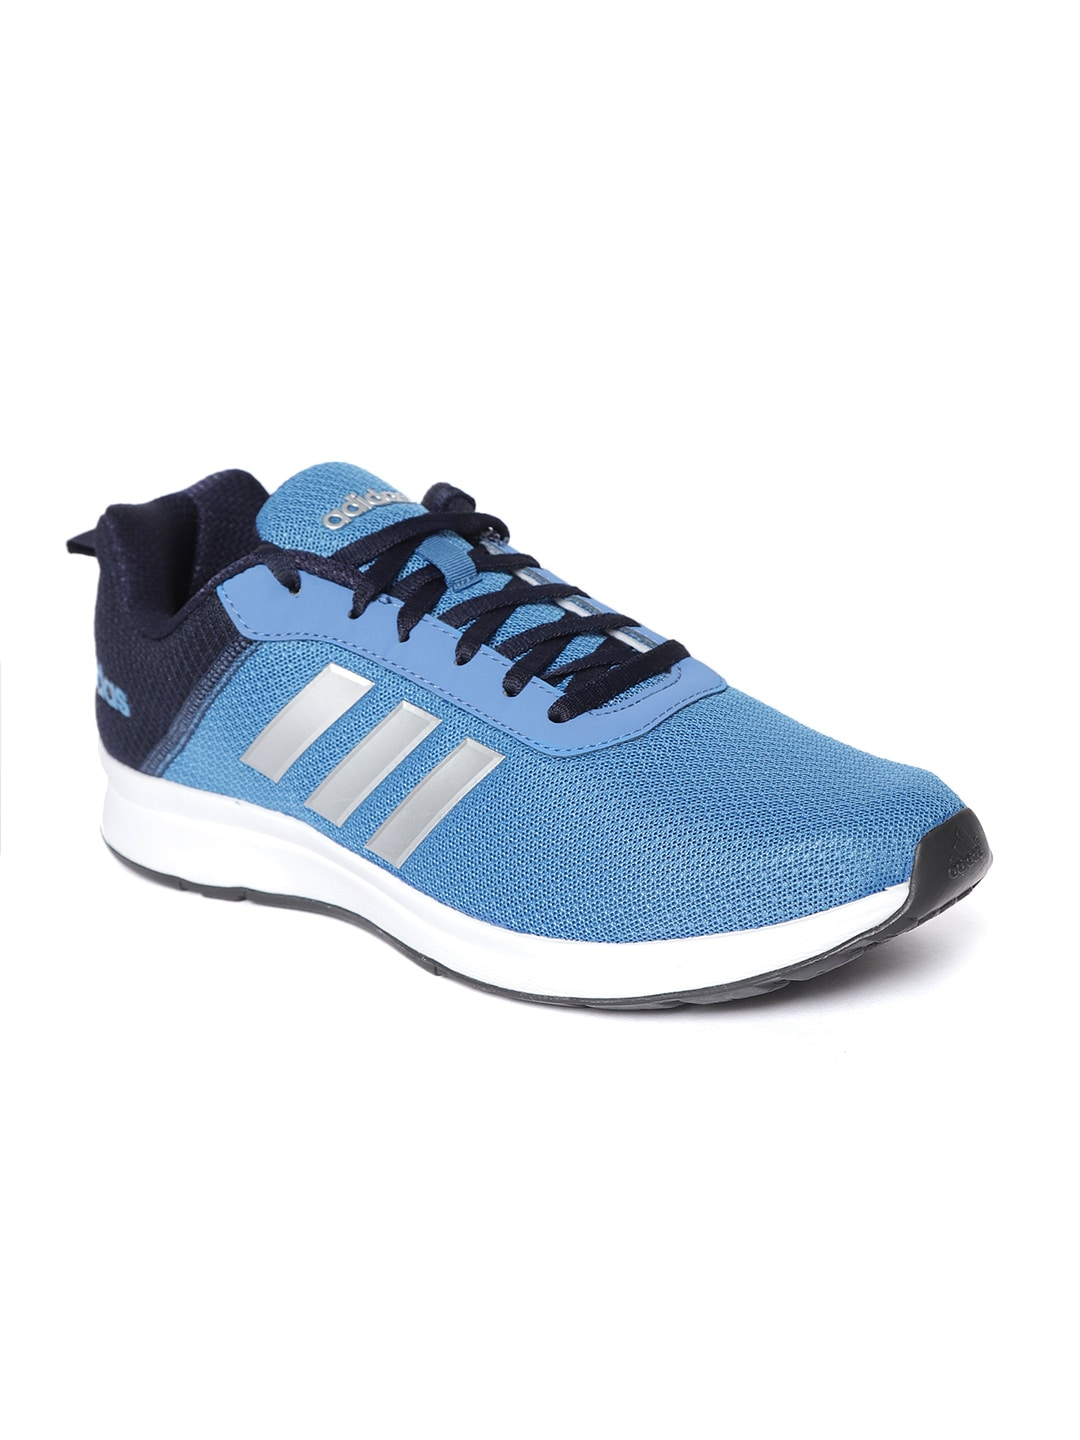 9eb3f47ceb0 Adidas Shoes - Buy Adidas Shoes for Men   Women Online - Myntra